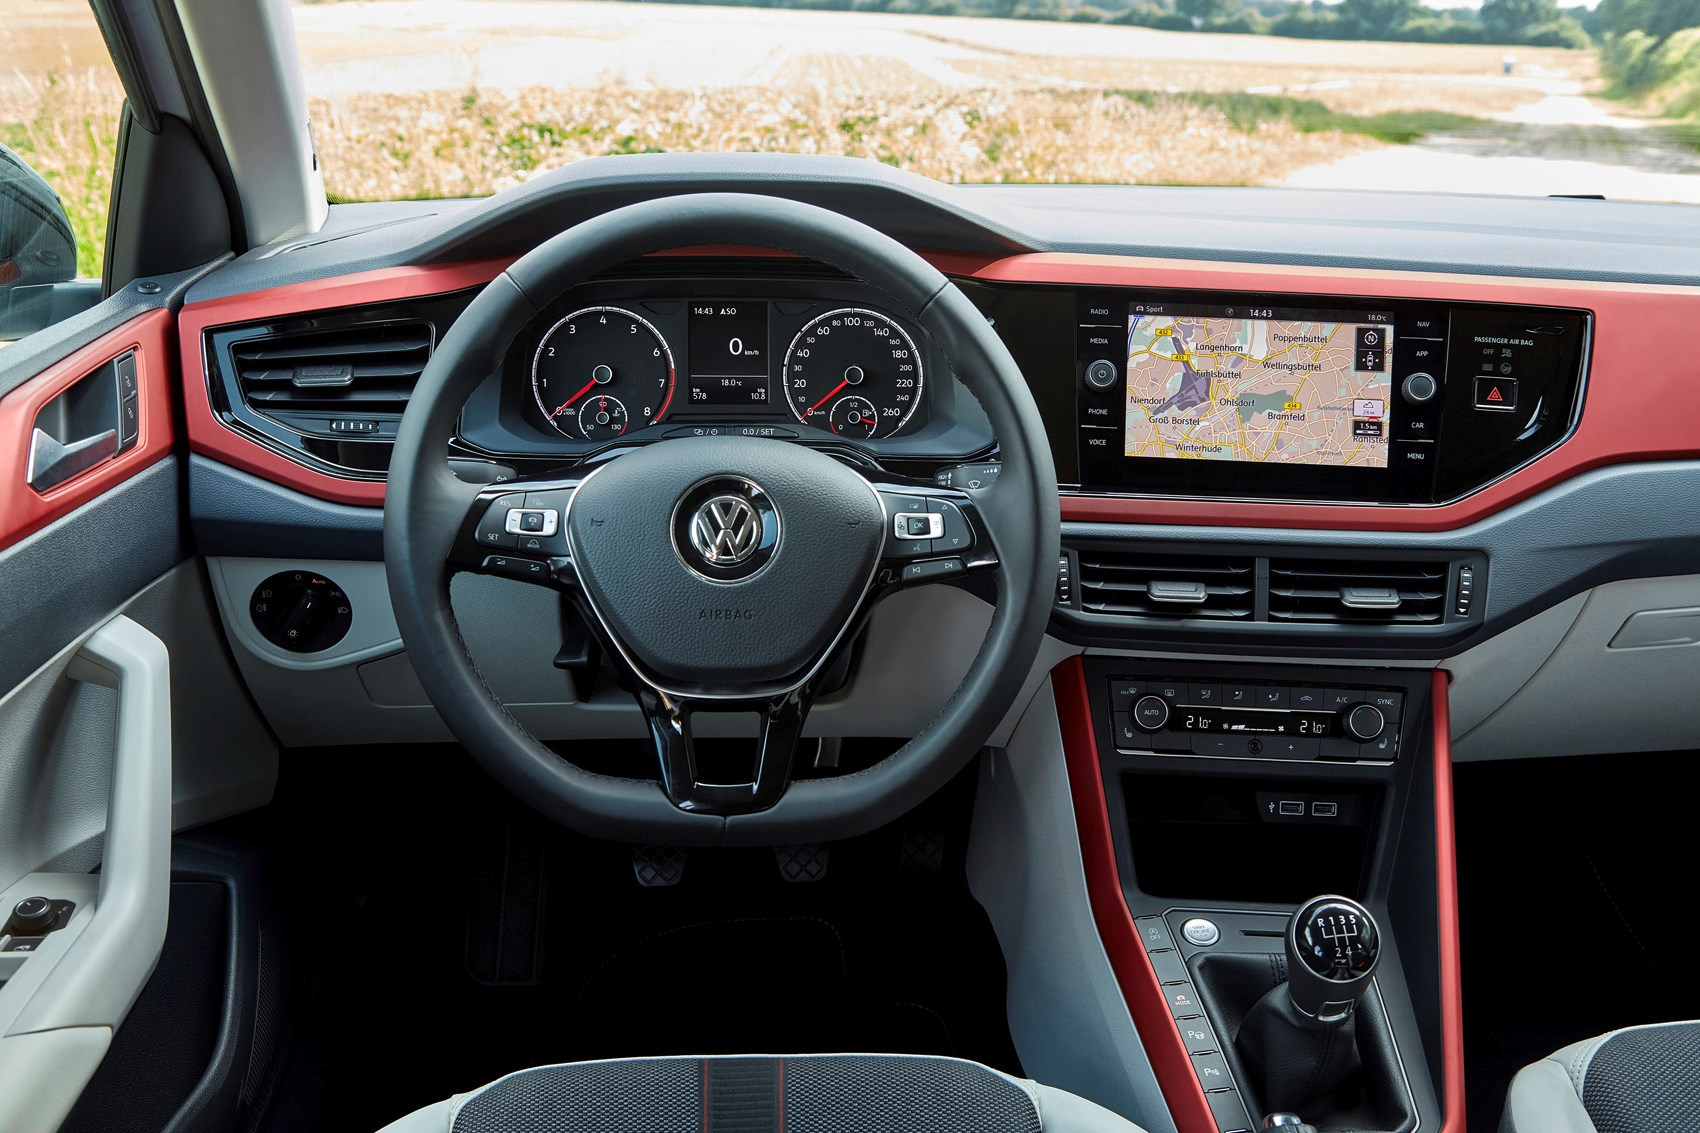 Vw polo review features safety and practicality parkers vw 2017 polo interior detail publicscrutiny Choice Image